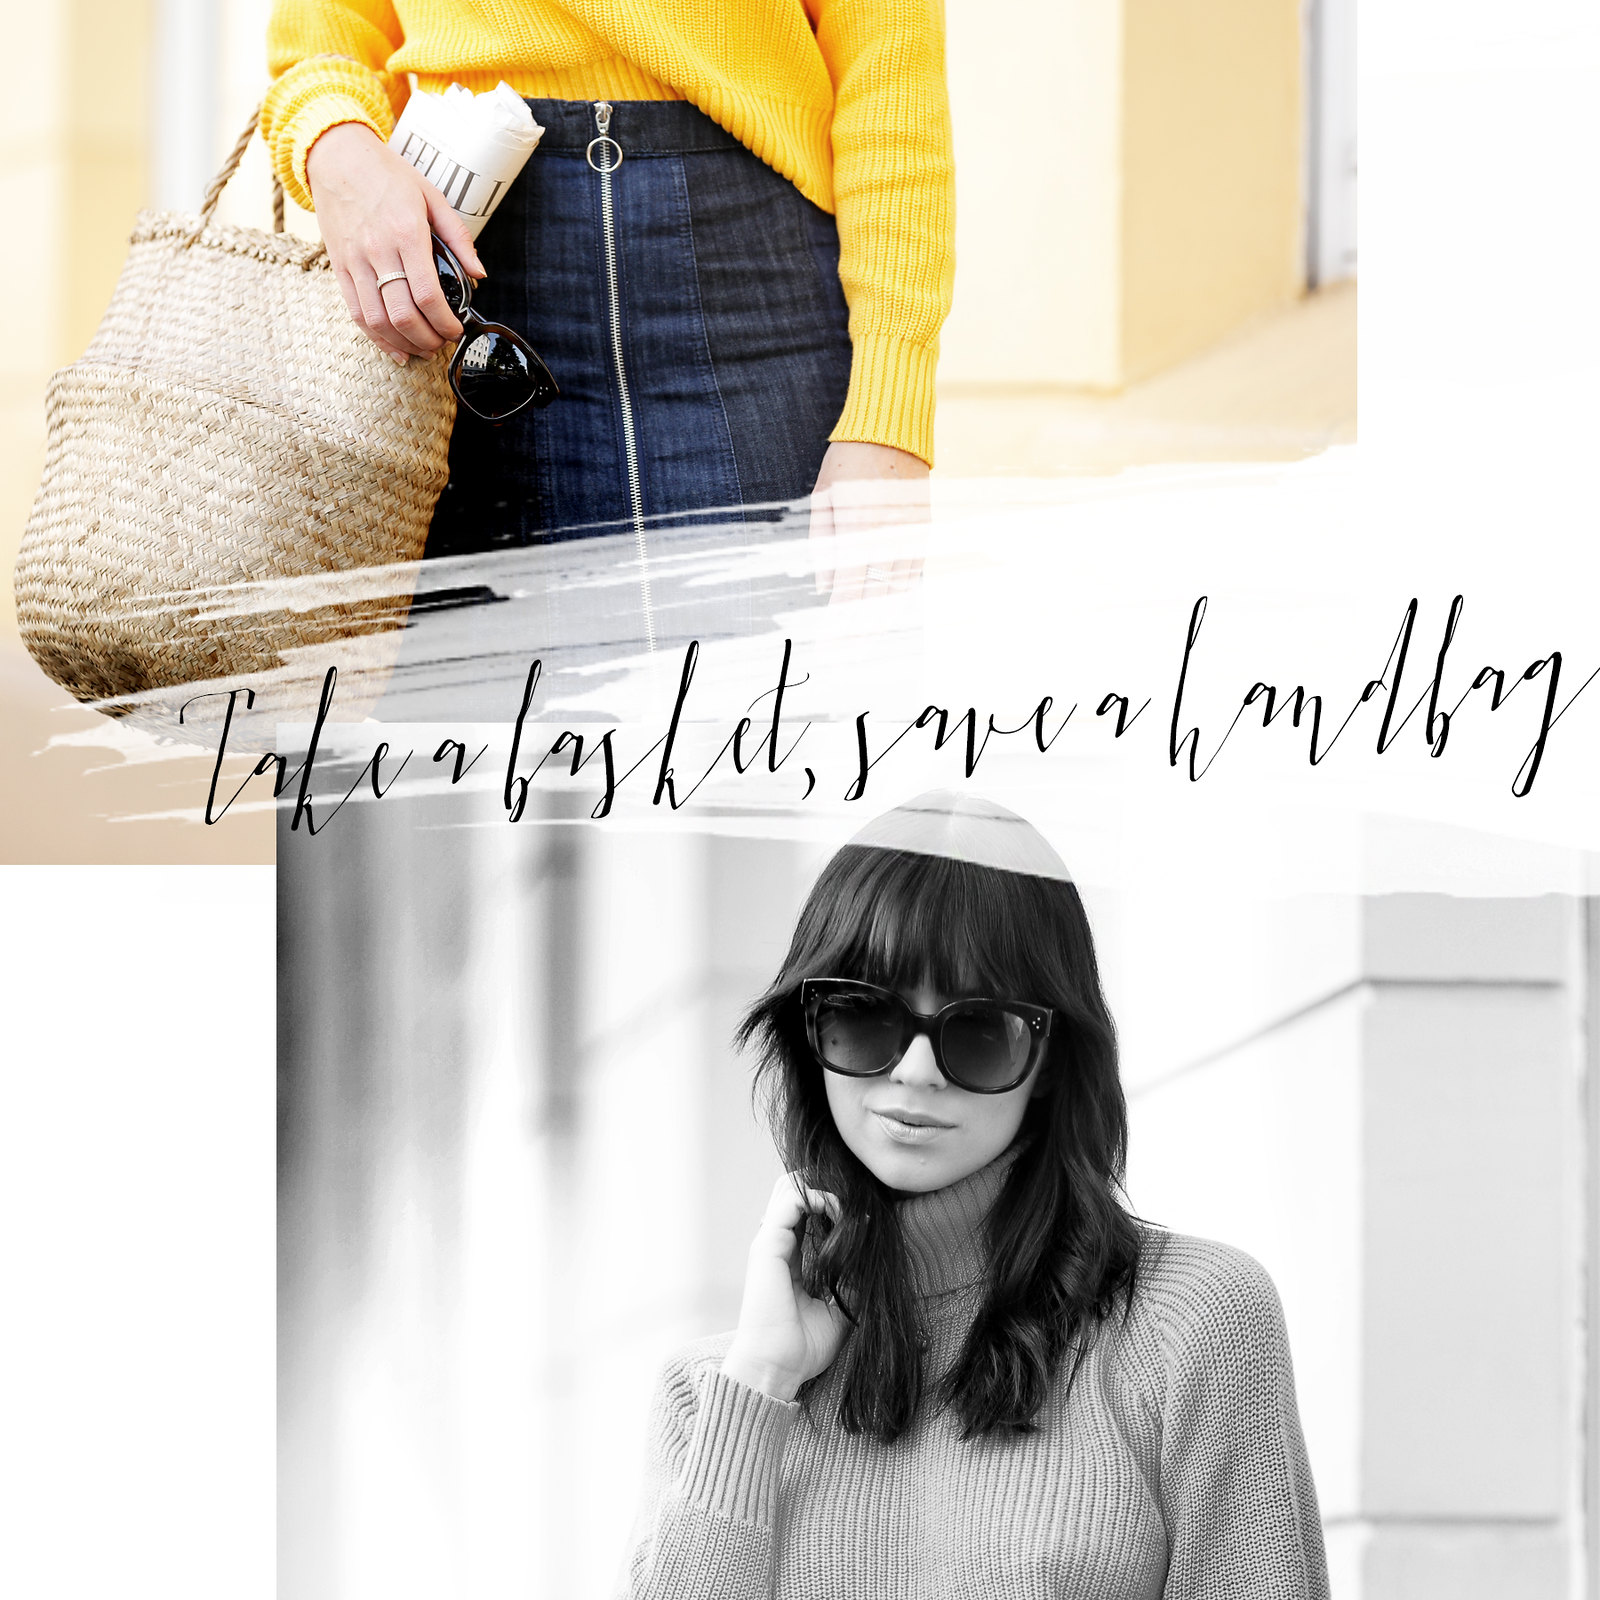 ootd outfit yellow knit turtleneck mini skirt basket jane birkin francoise hardy inspired french icons parisienne style bangs brunette céline audrey sunglasses cats & dogs fashion blog ricarda schernus modeblog fashionblogger germany berlin 1